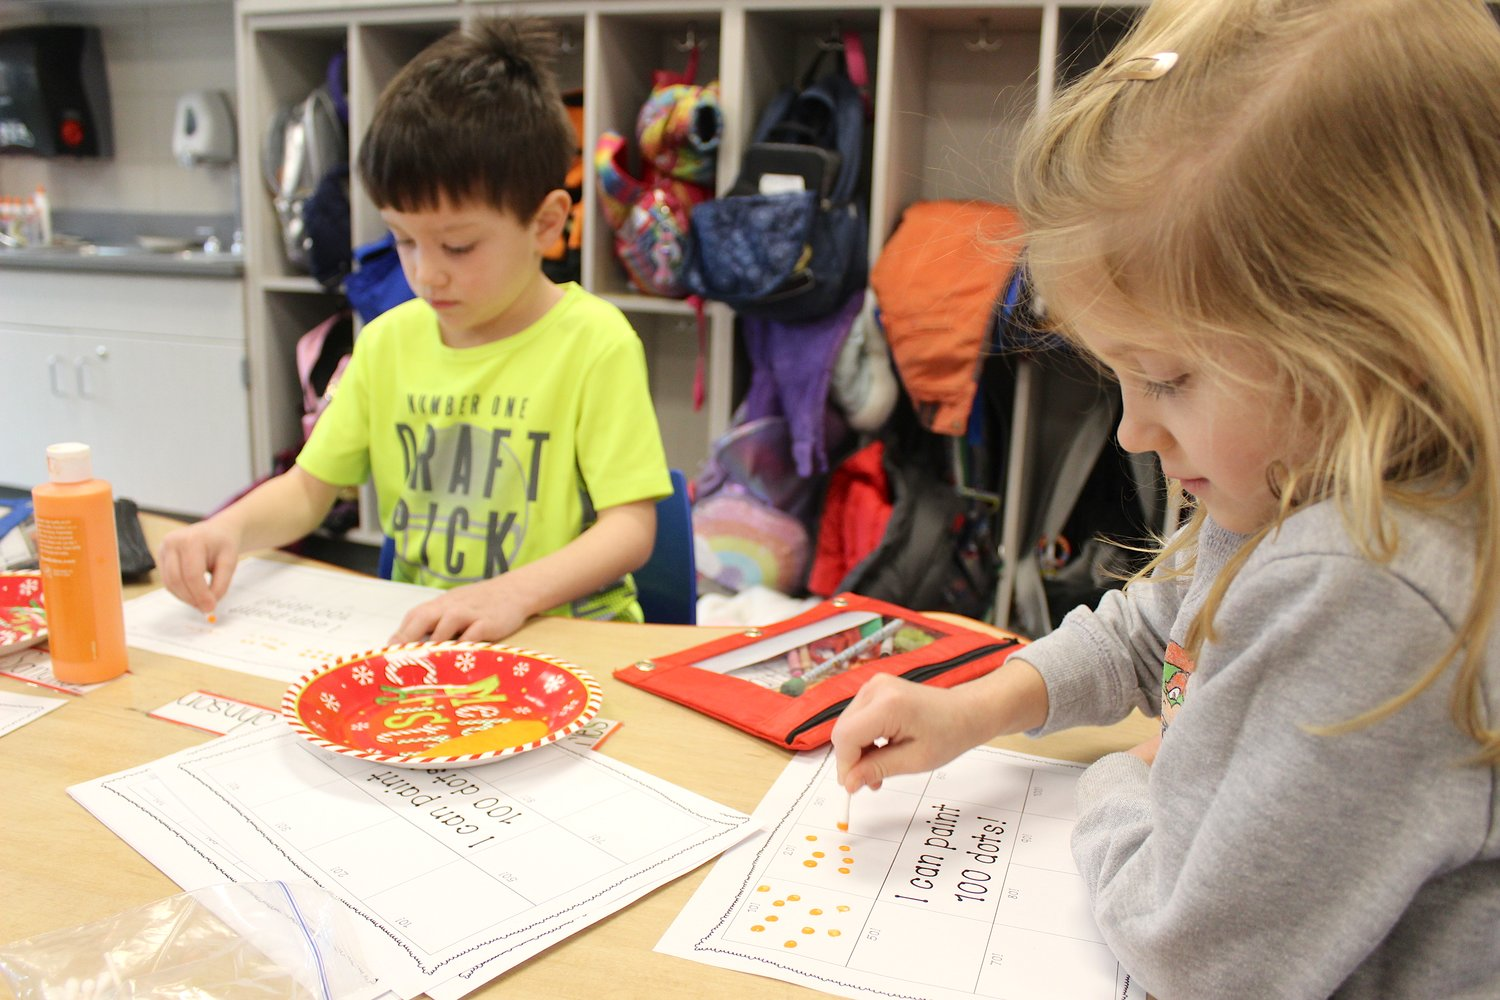 Painting 100 dots, 10 at a time, are Alex Johnson and Caitlin Jeffries during their 100th day of school.